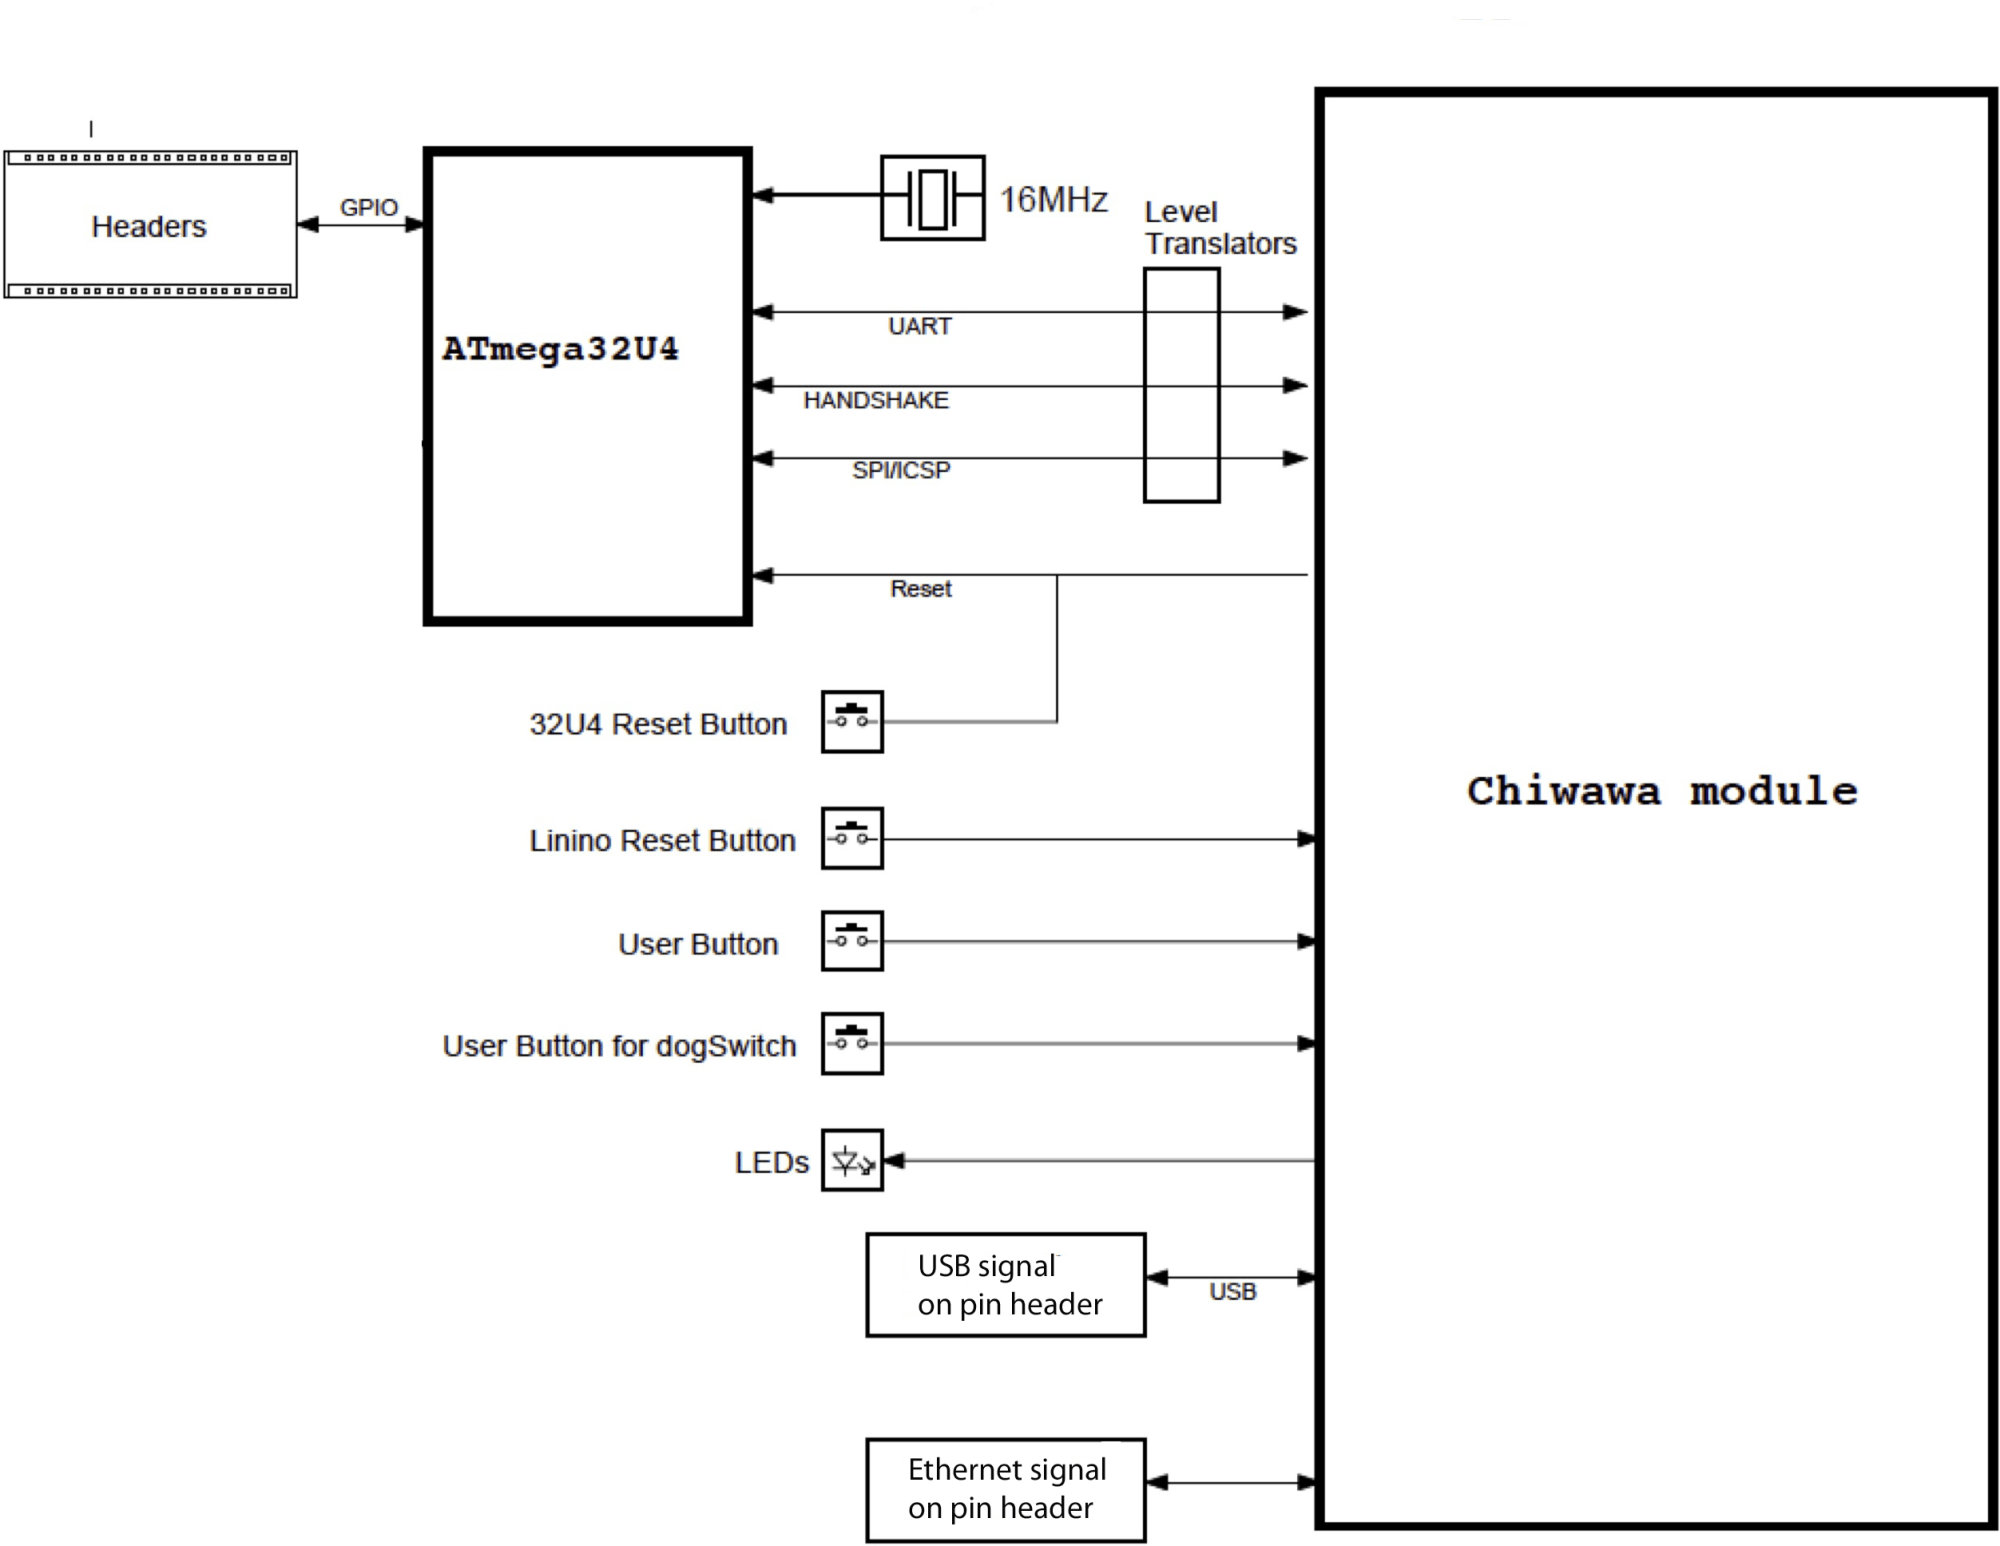 hight resolution of wiring diagrams also honeywell wi fi thermostat diagram honeywell th5220d1003 manual honeywell thermostat wiring